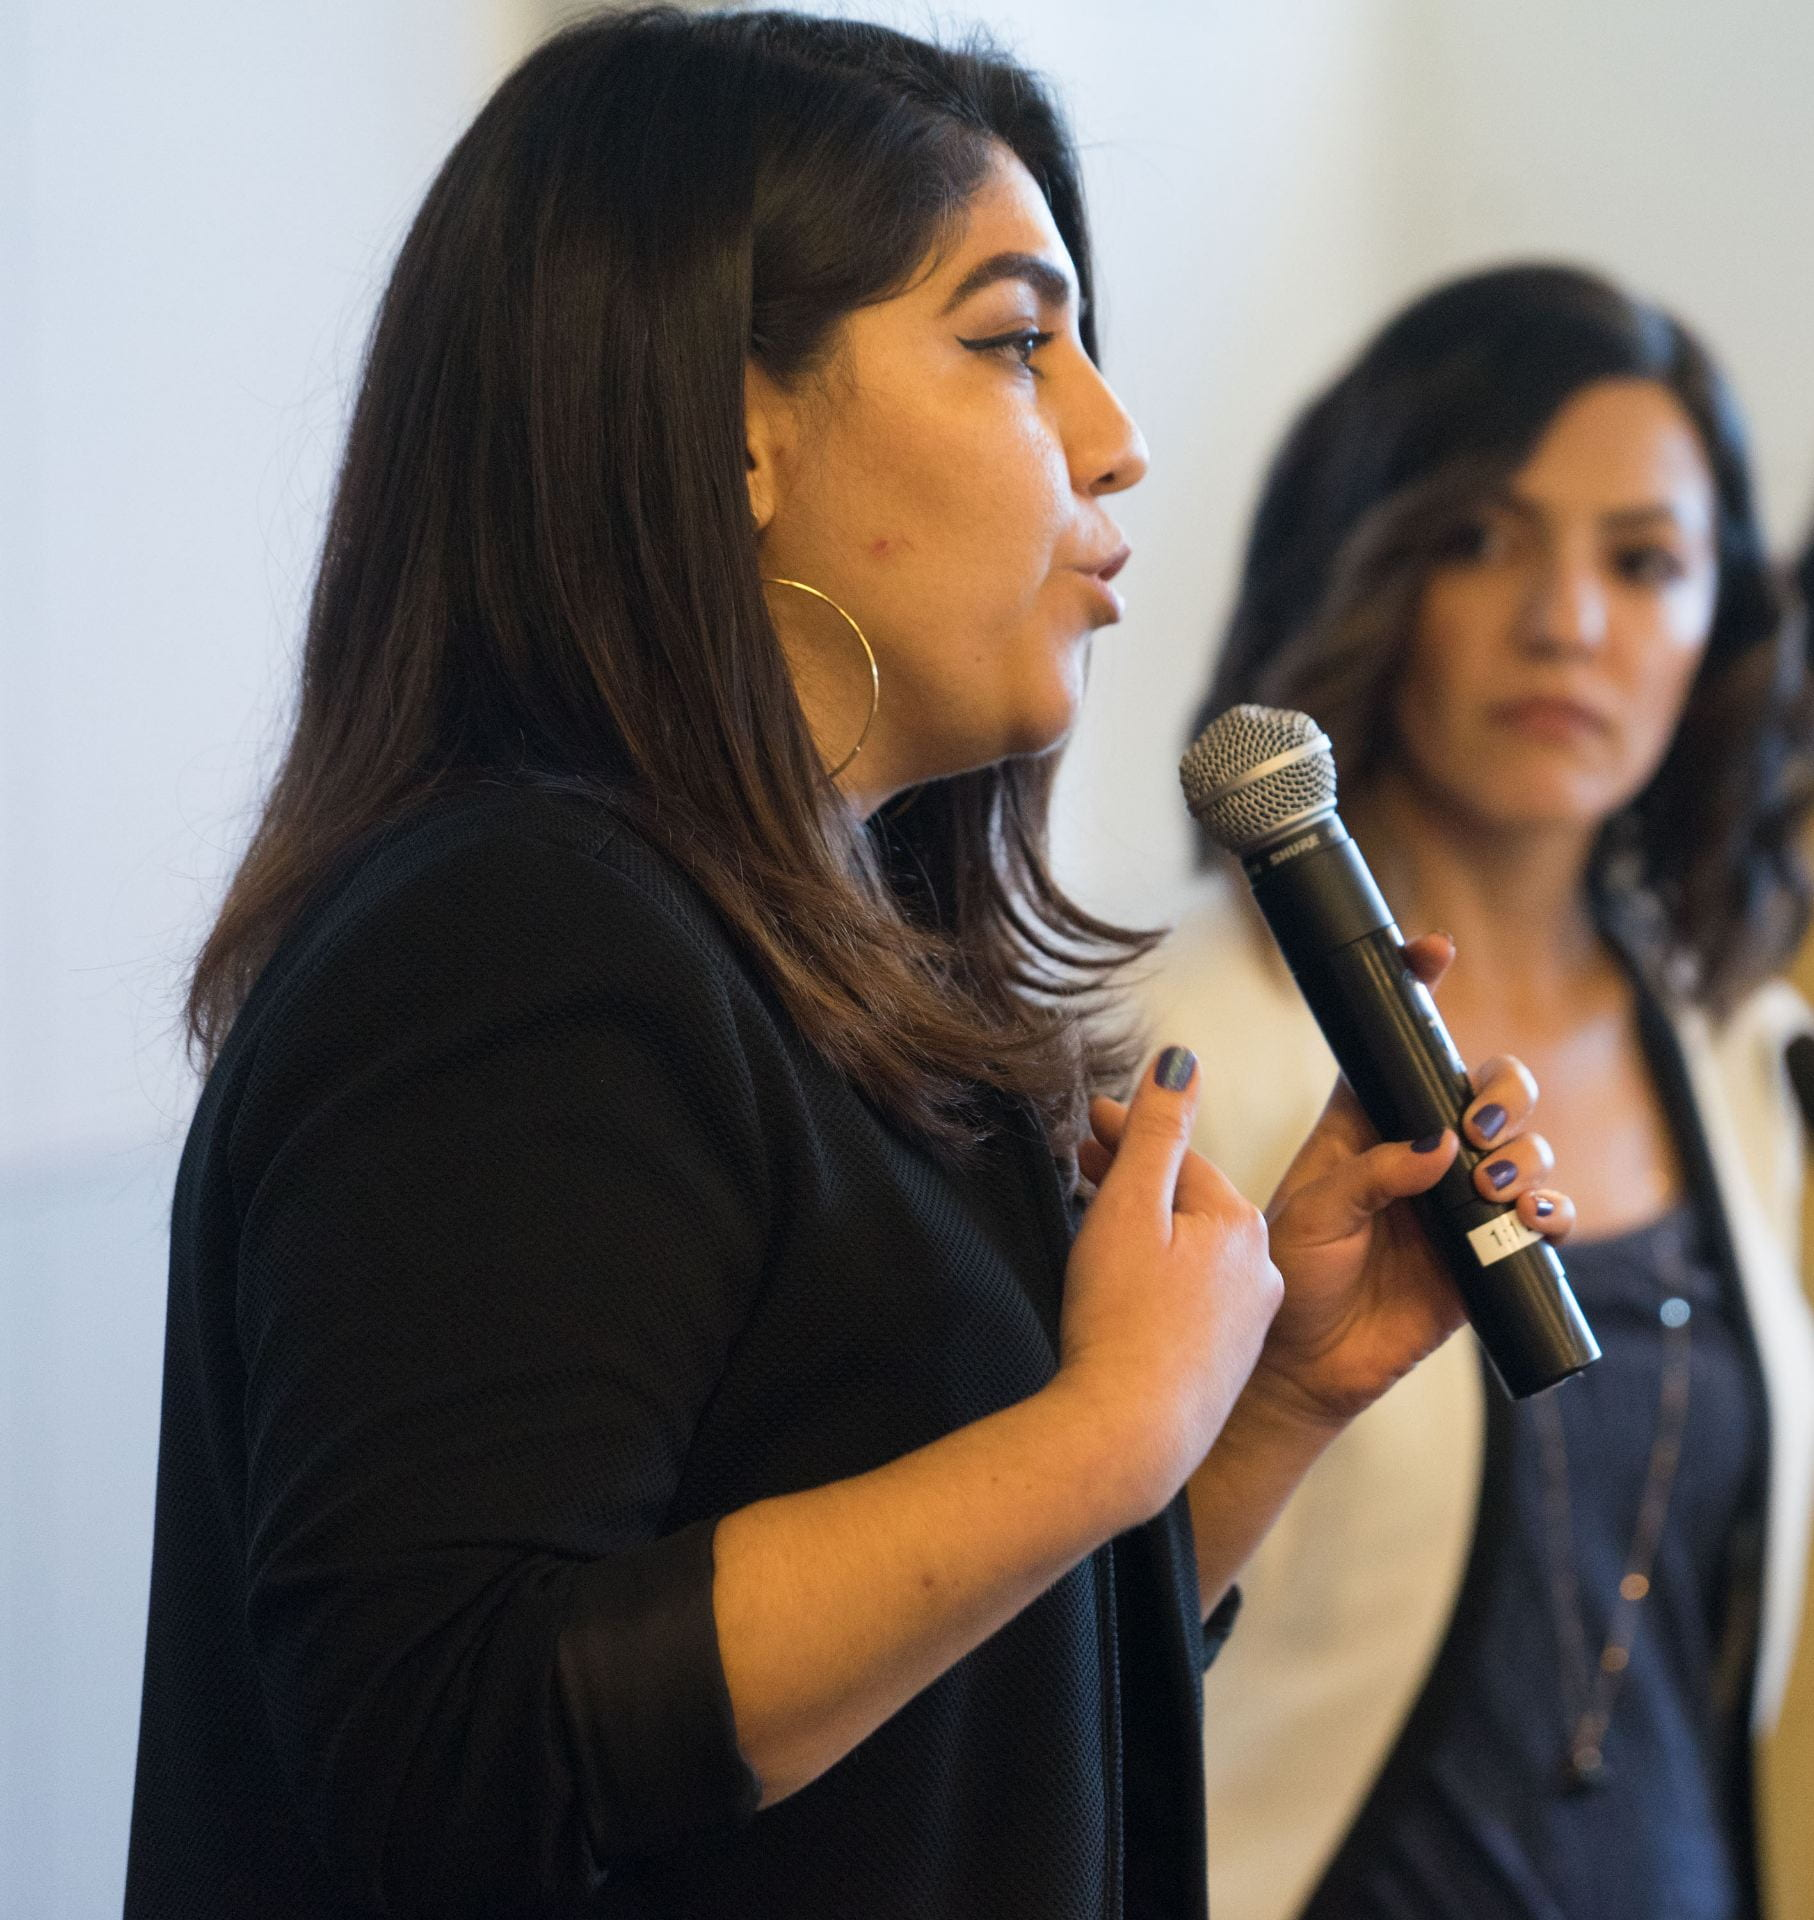 Ana Navarrete Avina, the program coordinator of the UndocuSpartan Resource Center, speaks at an opening celebration for the center that was established in 2018. (Photo: James Tensuan, '15 Journalism)